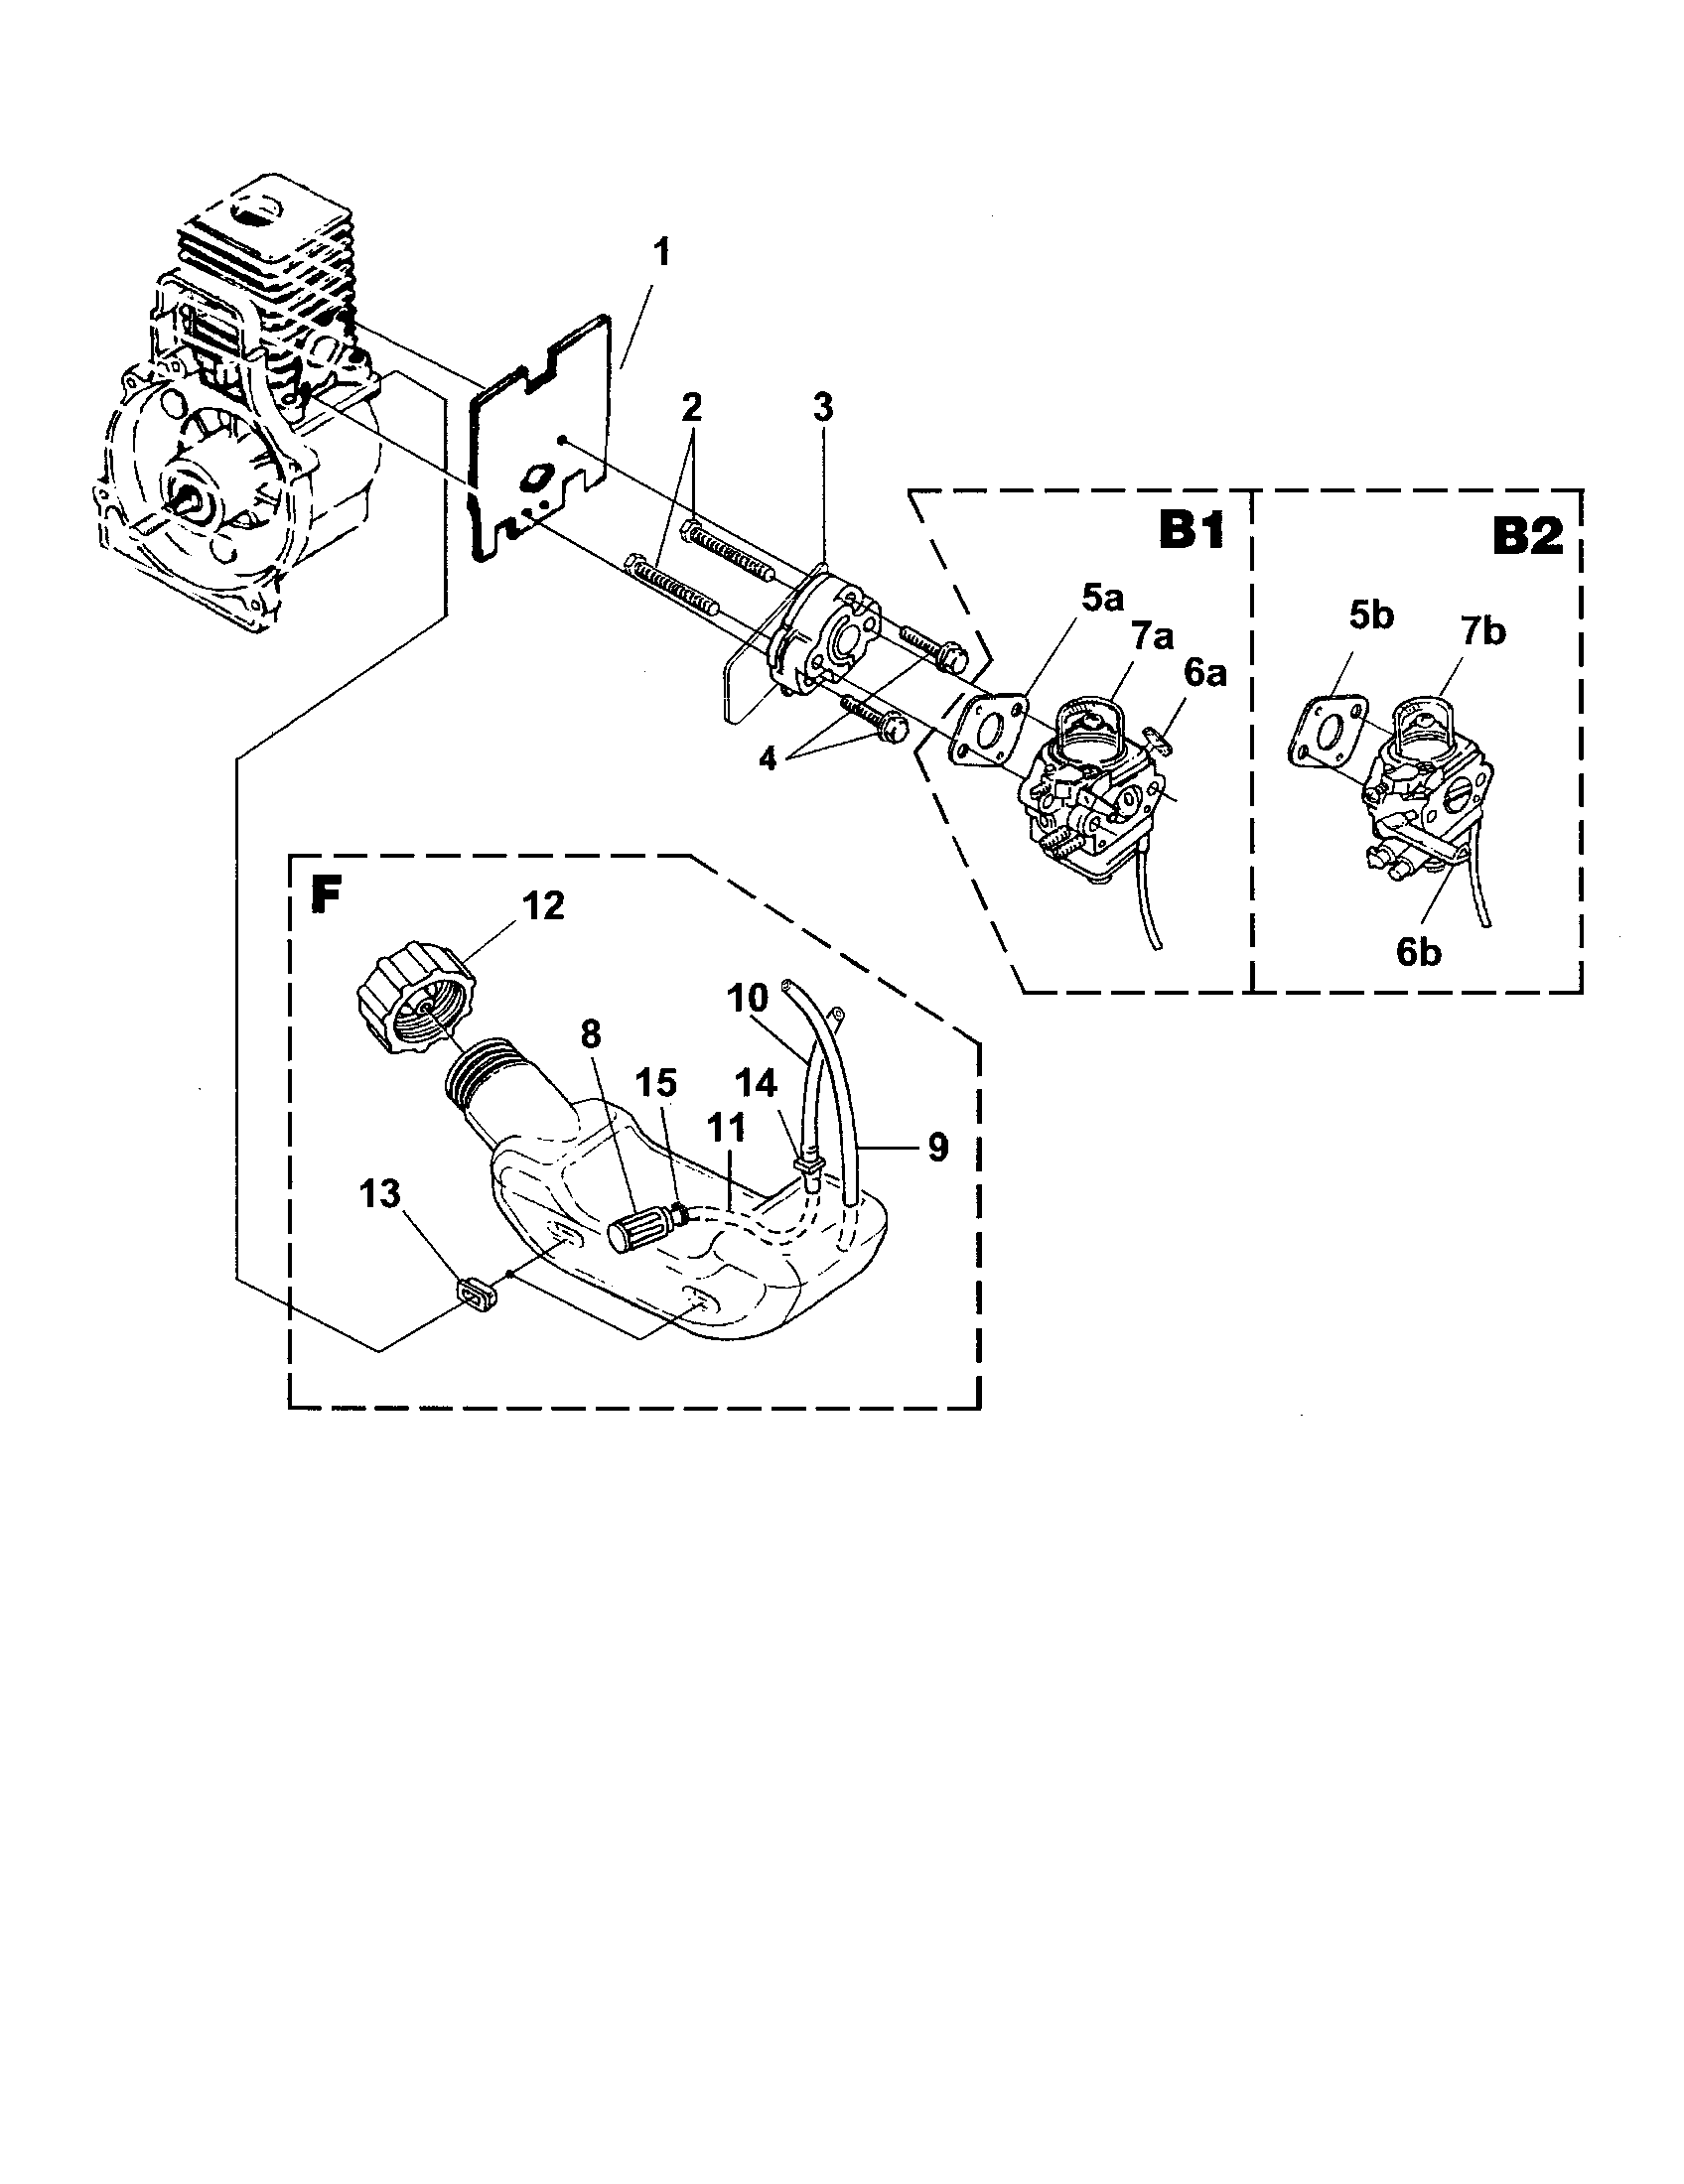 CARBURETOR/FUEL TANK Diagram & Parts List for Model